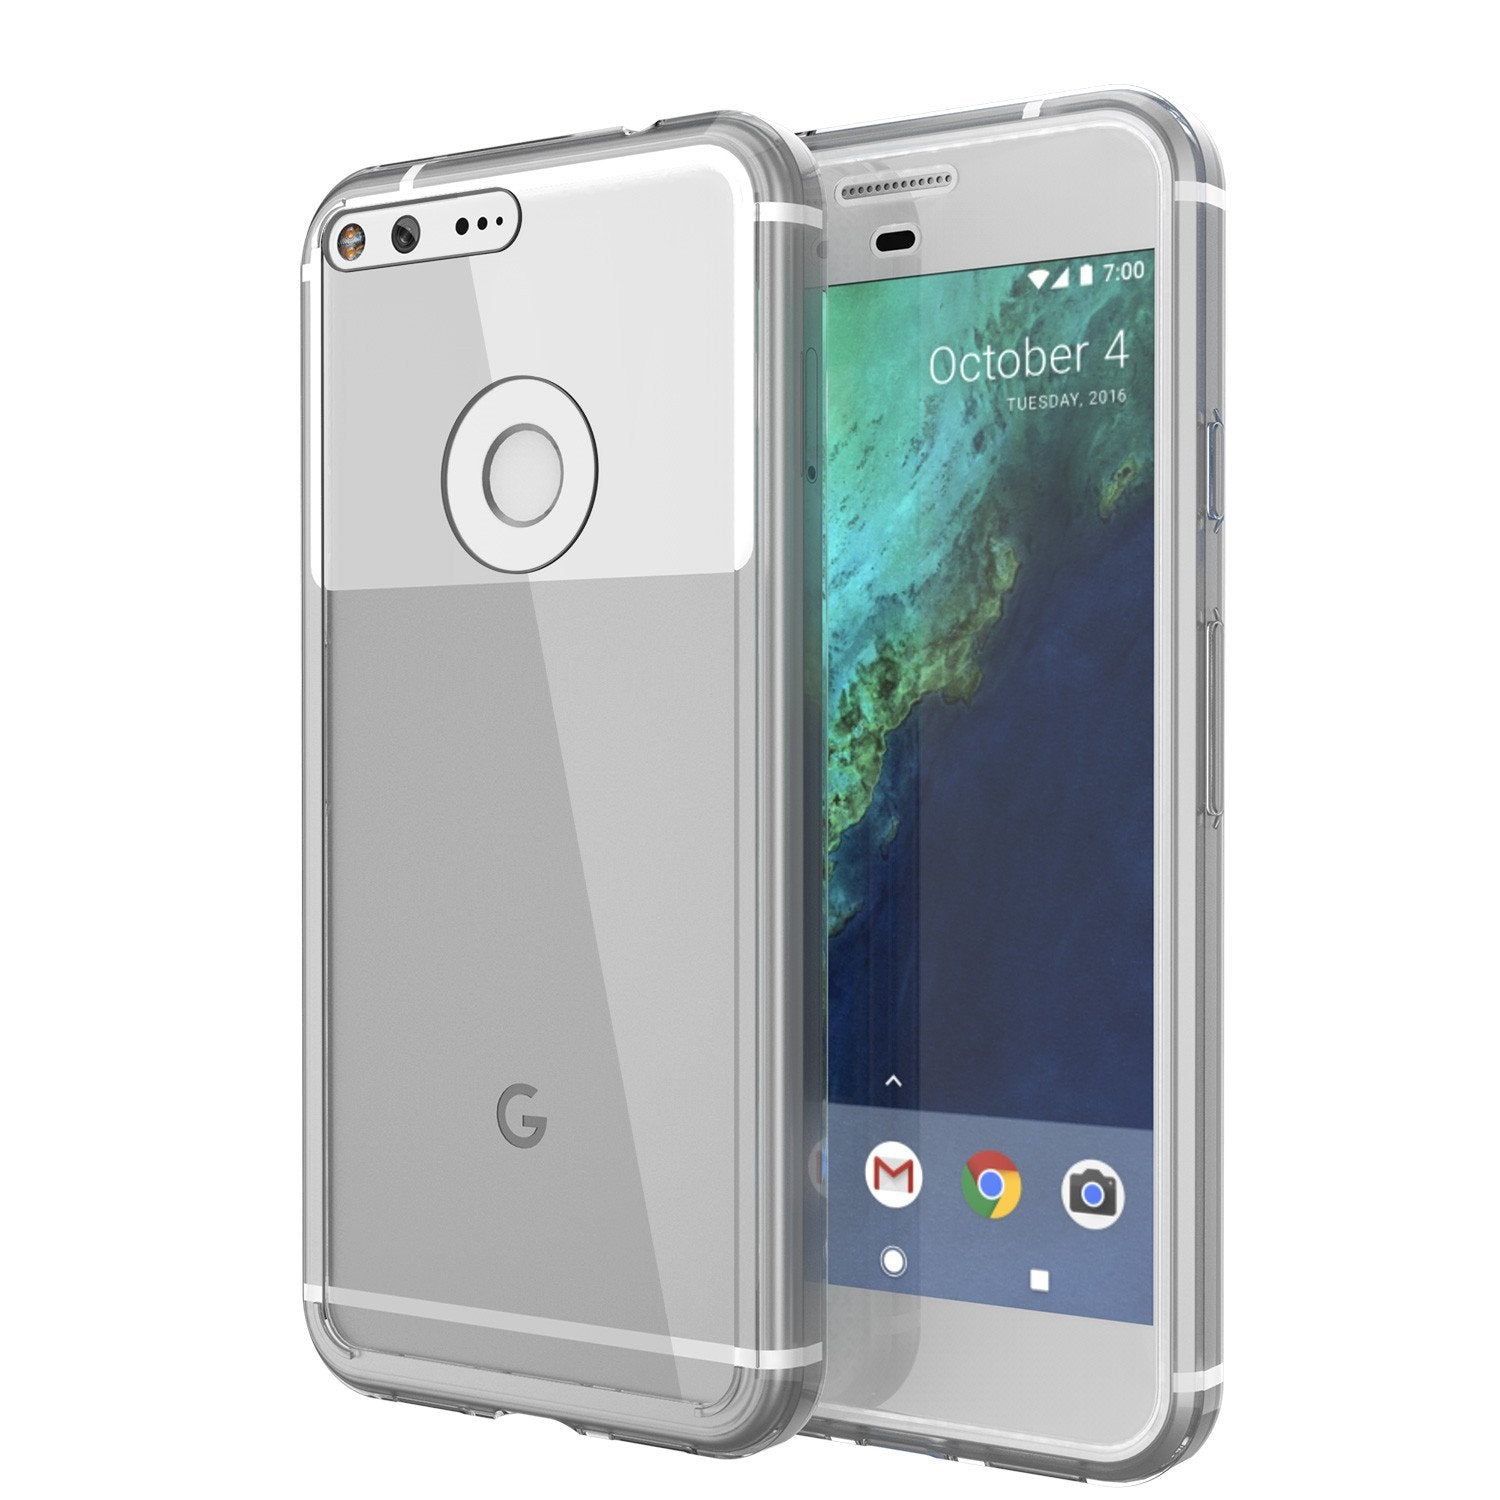 Google Pixel Case Punkcase® LUCID 2.0 Clear Series w/ PUNK SHIELD Glass Screen Protector | Ultra Fit - PunkCase NZ